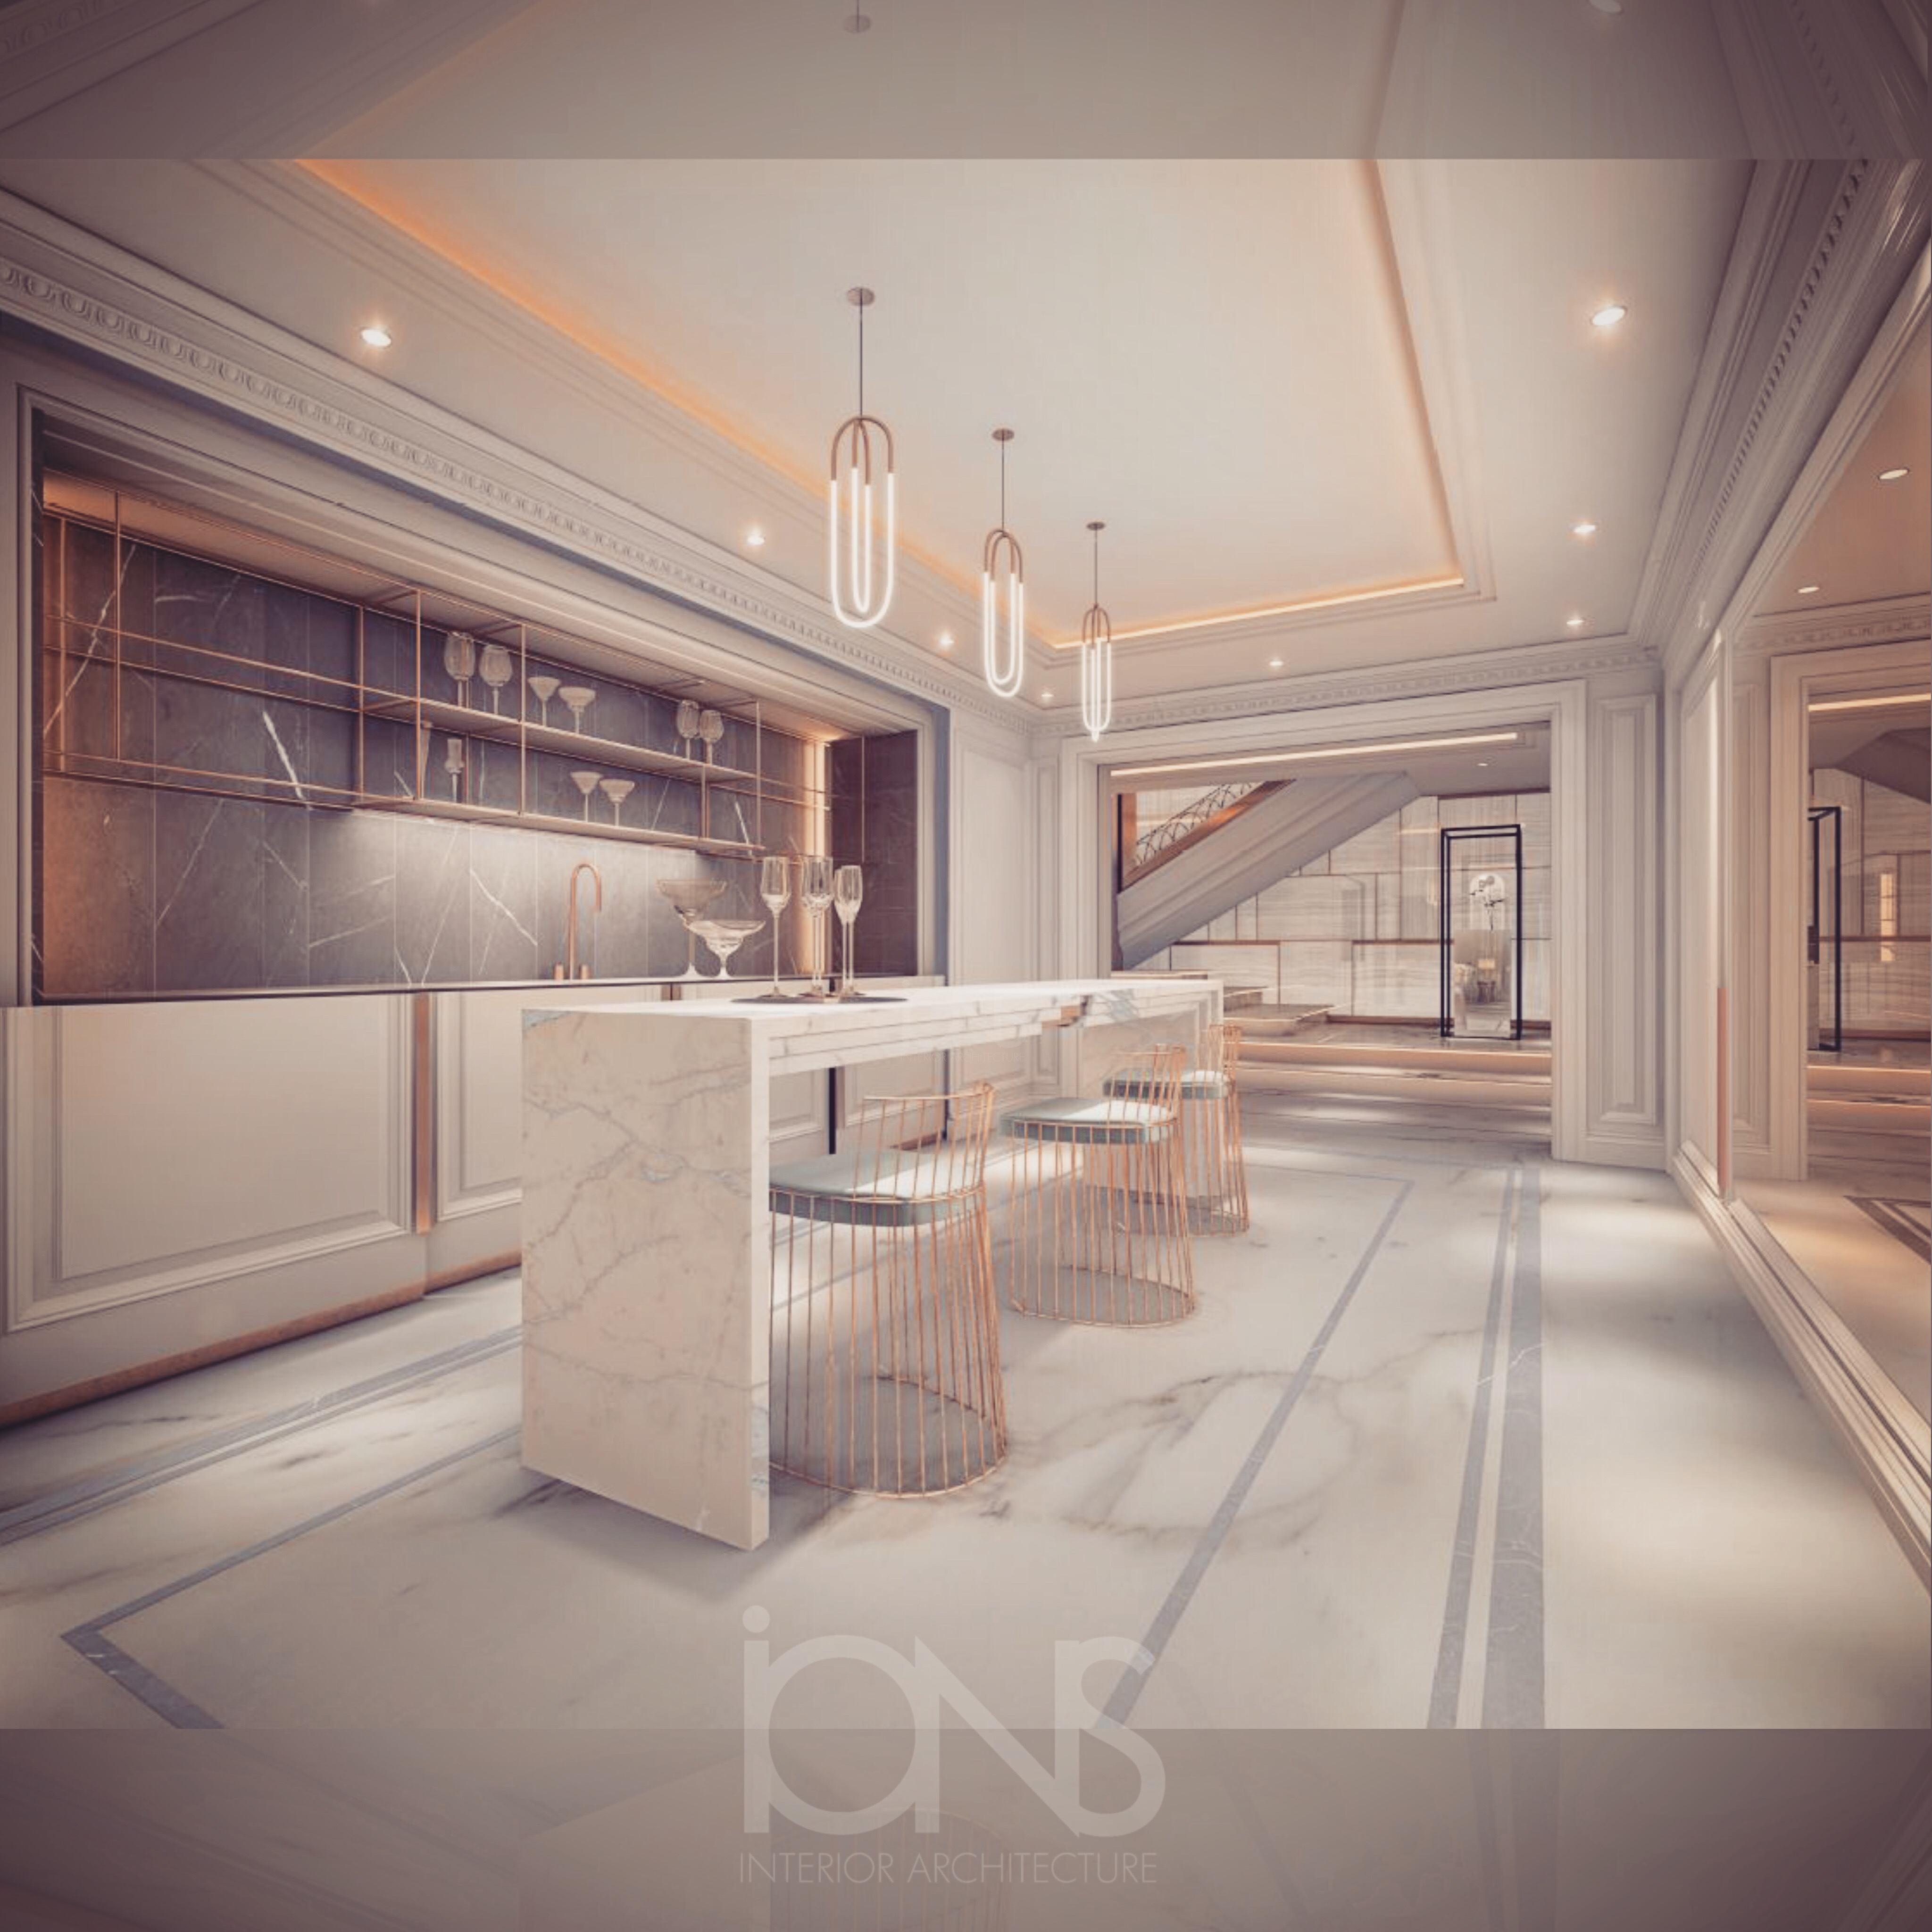 Ions Interior Design Dubai minimalist style kitchen interior | ions design